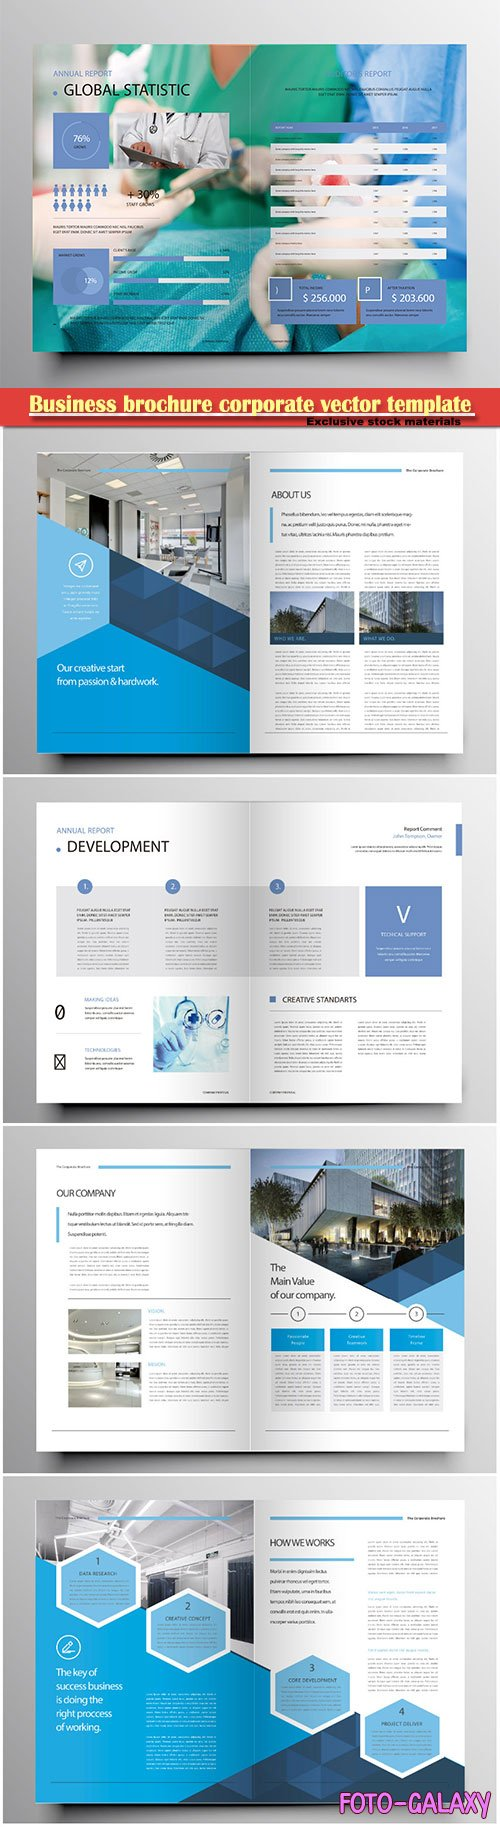 Business brochure corporate vector template, magazine flyer mockup # 29